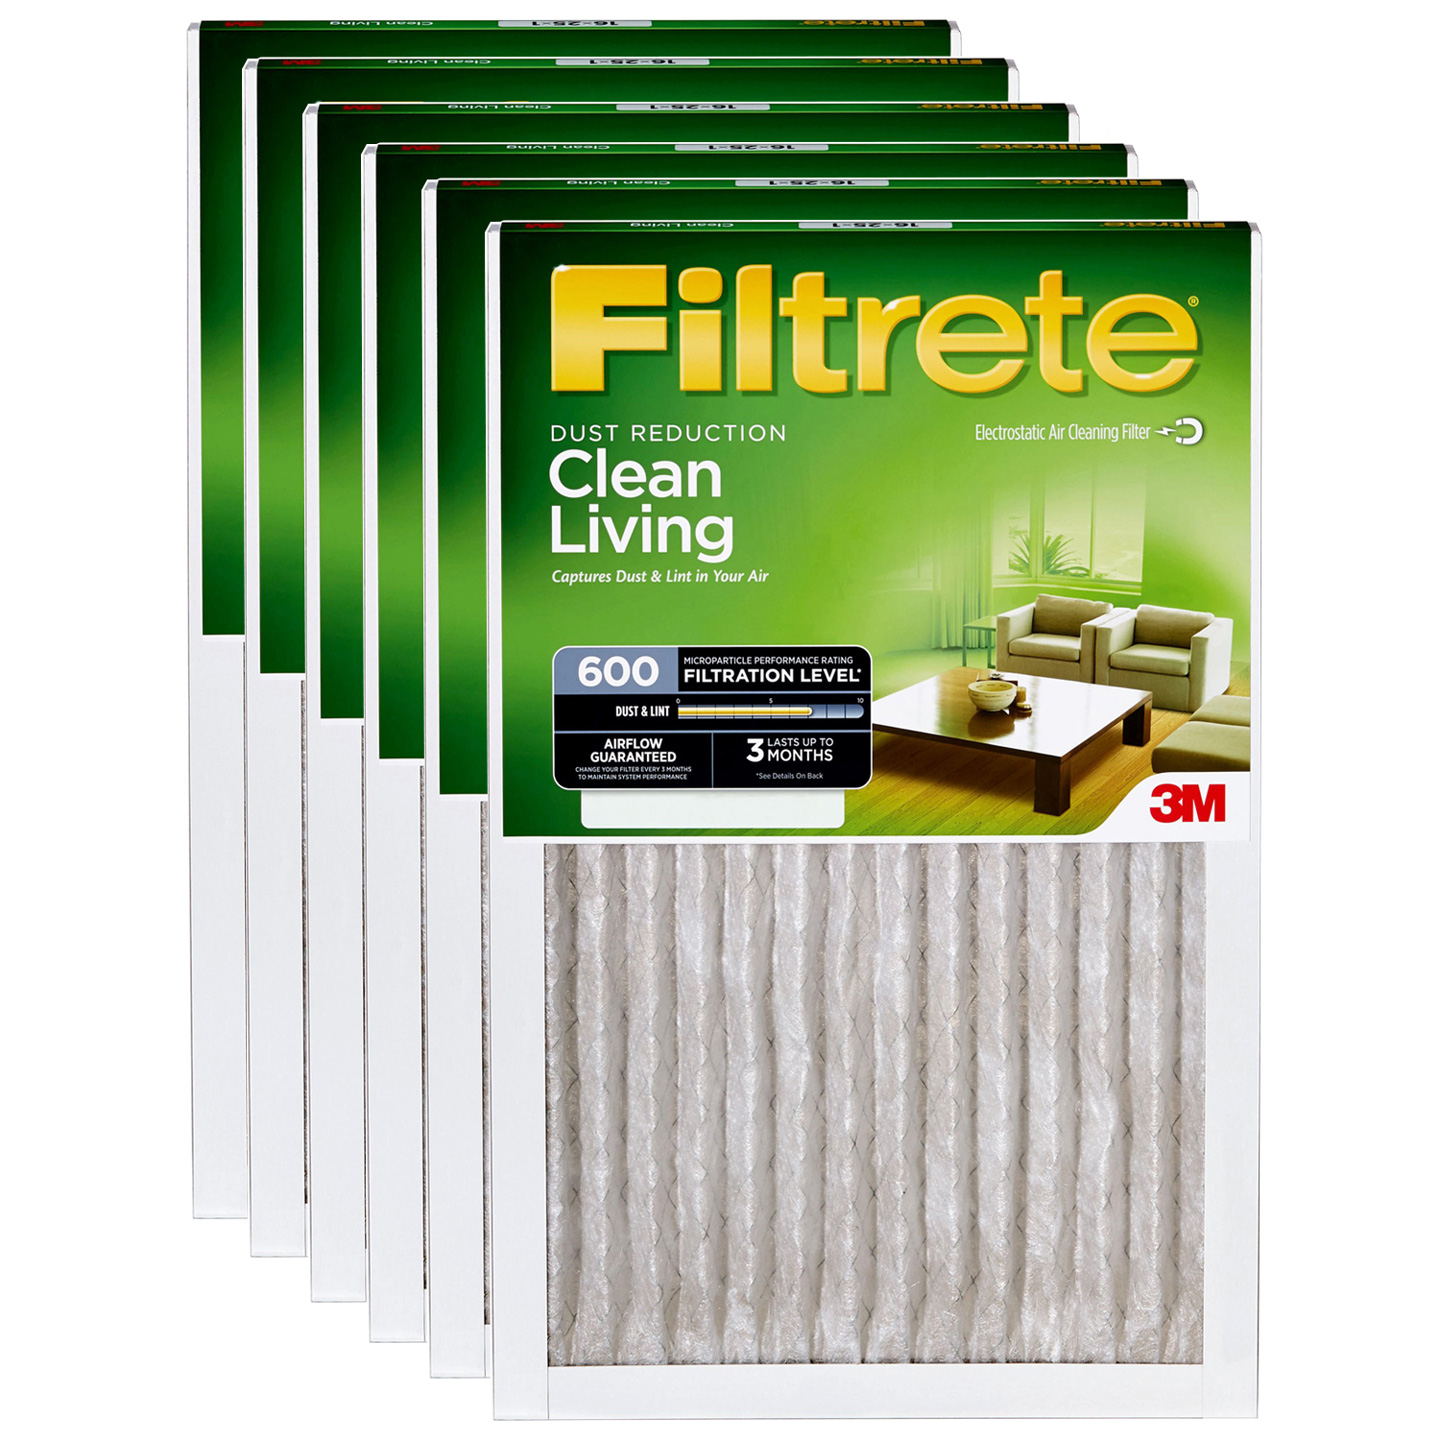 14x14x1 3M Filtrete Dust and Pollen Filter (6-Pack) FILTRETE_DUST_14x14x1_6_PACK